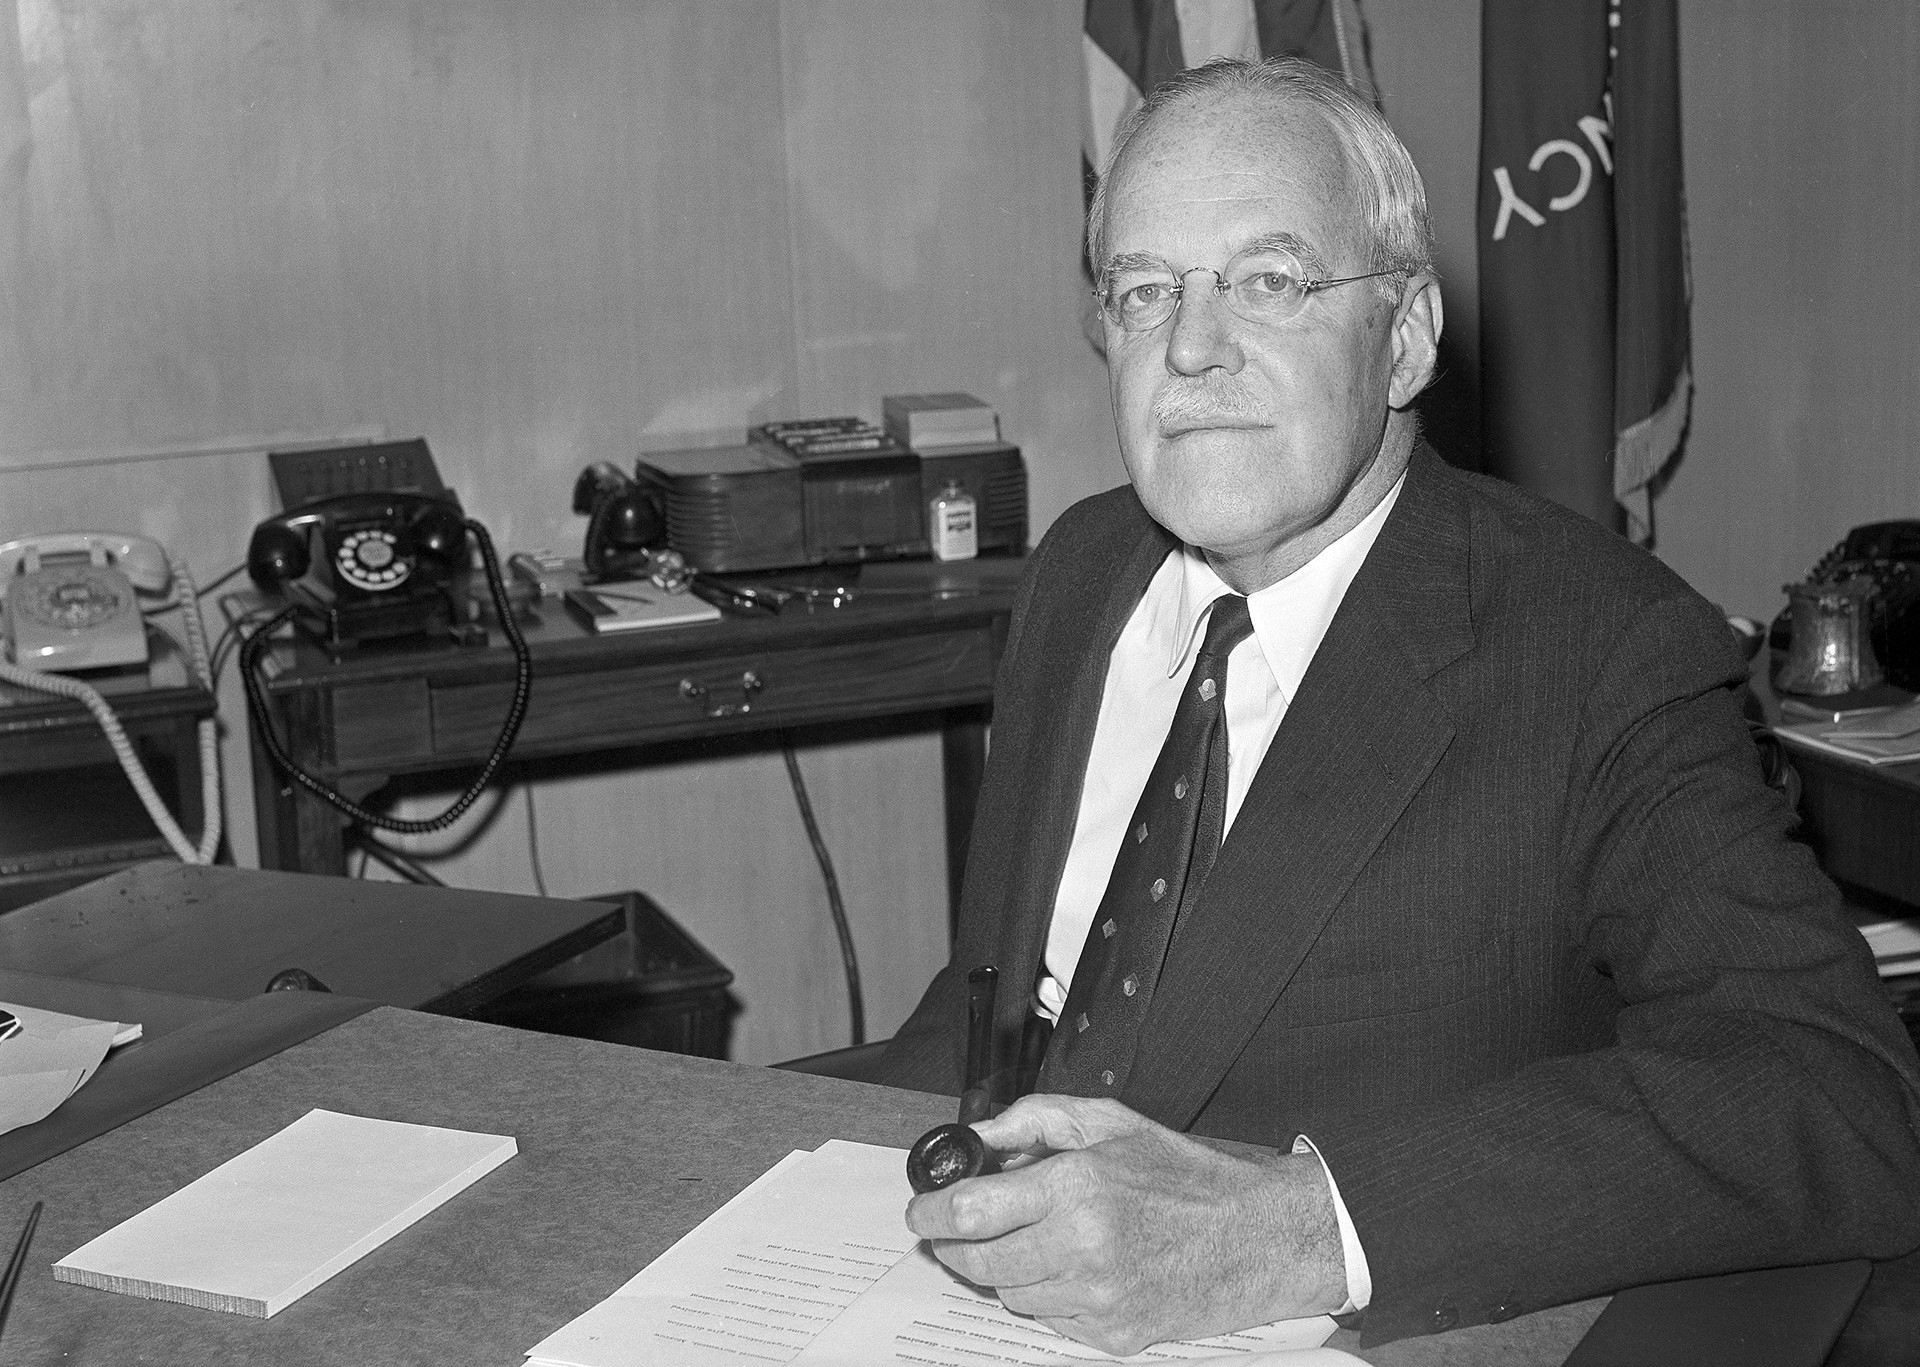 CIA-Direktor Allen W. Dulles in seinem Büro in Washington